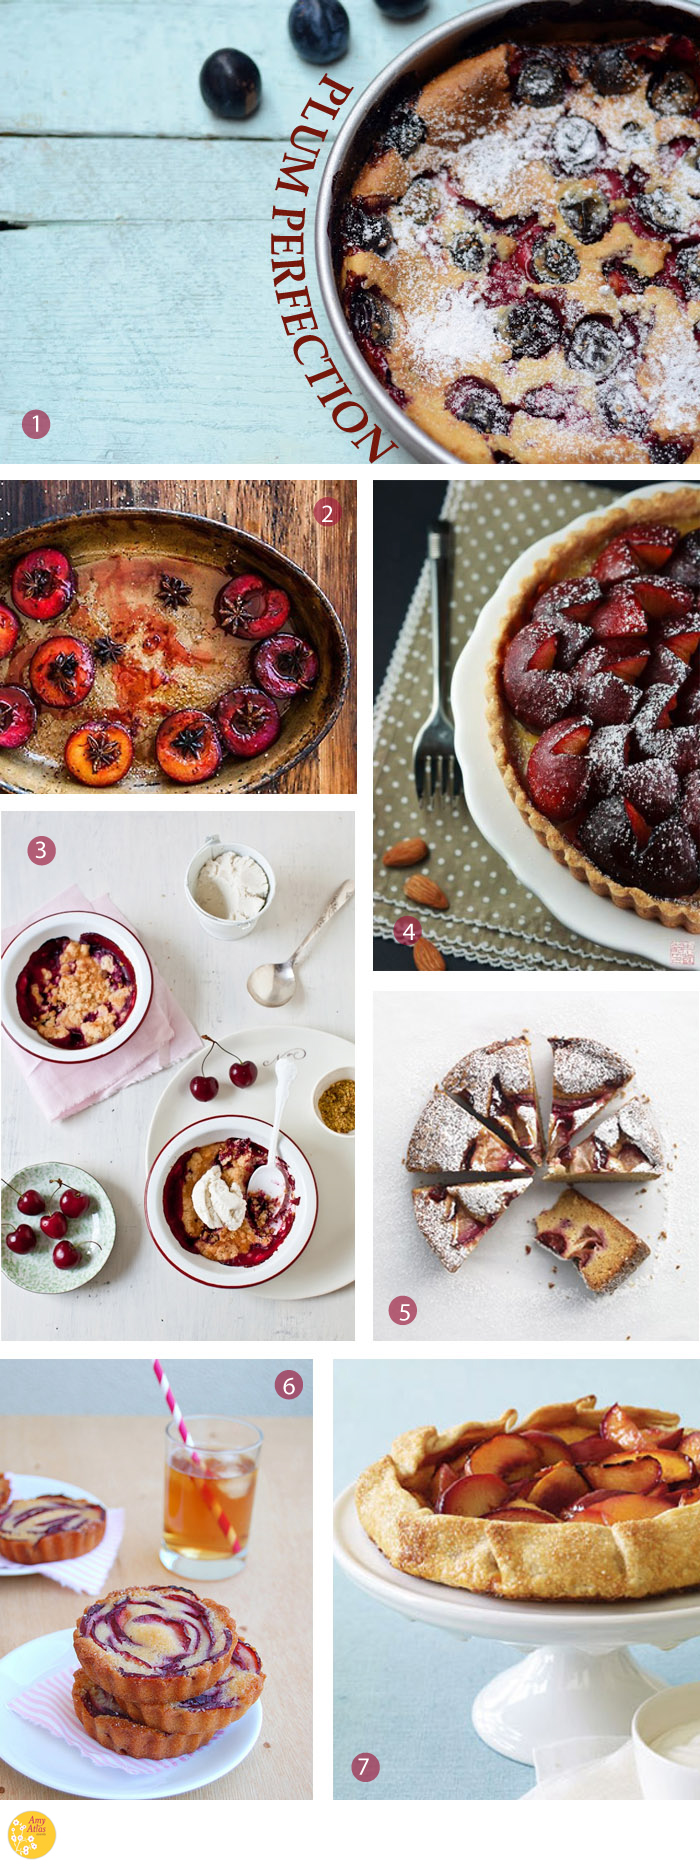 Plum Perfection4 Plum Perfection {18 Plum Desserts to Get Your Juices Flowing}